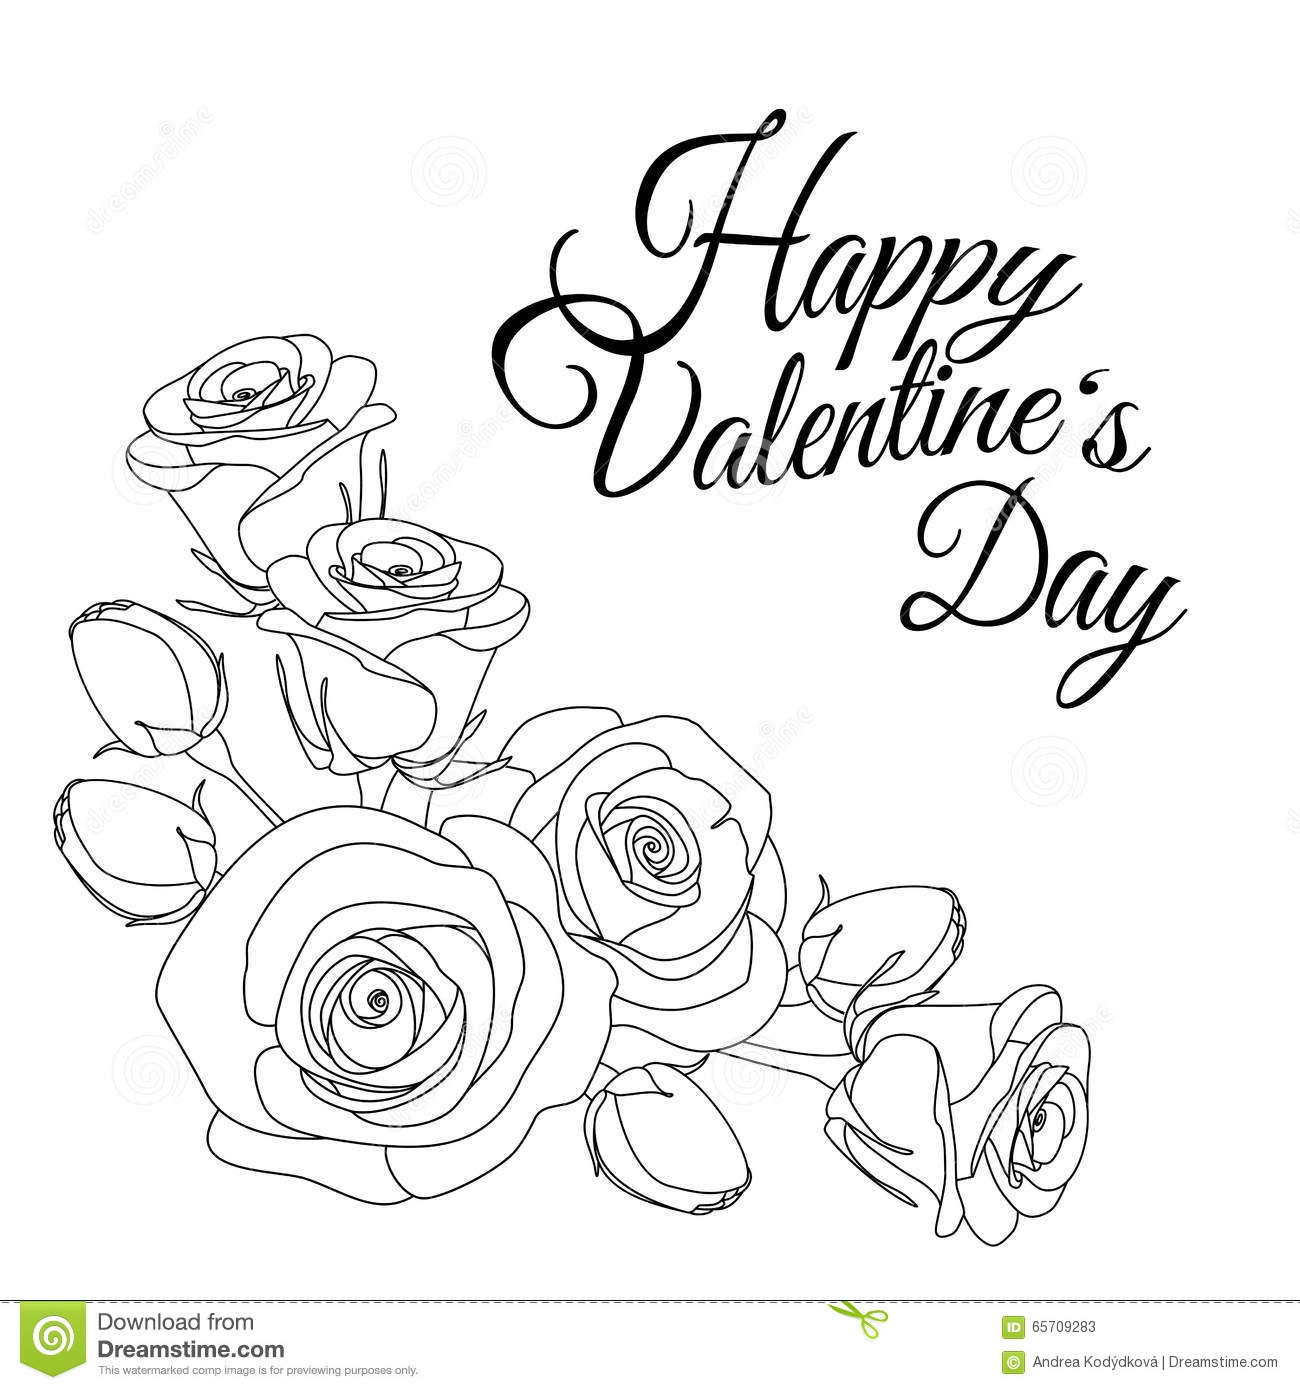 greeting card with text happy valentines day and roses colouring